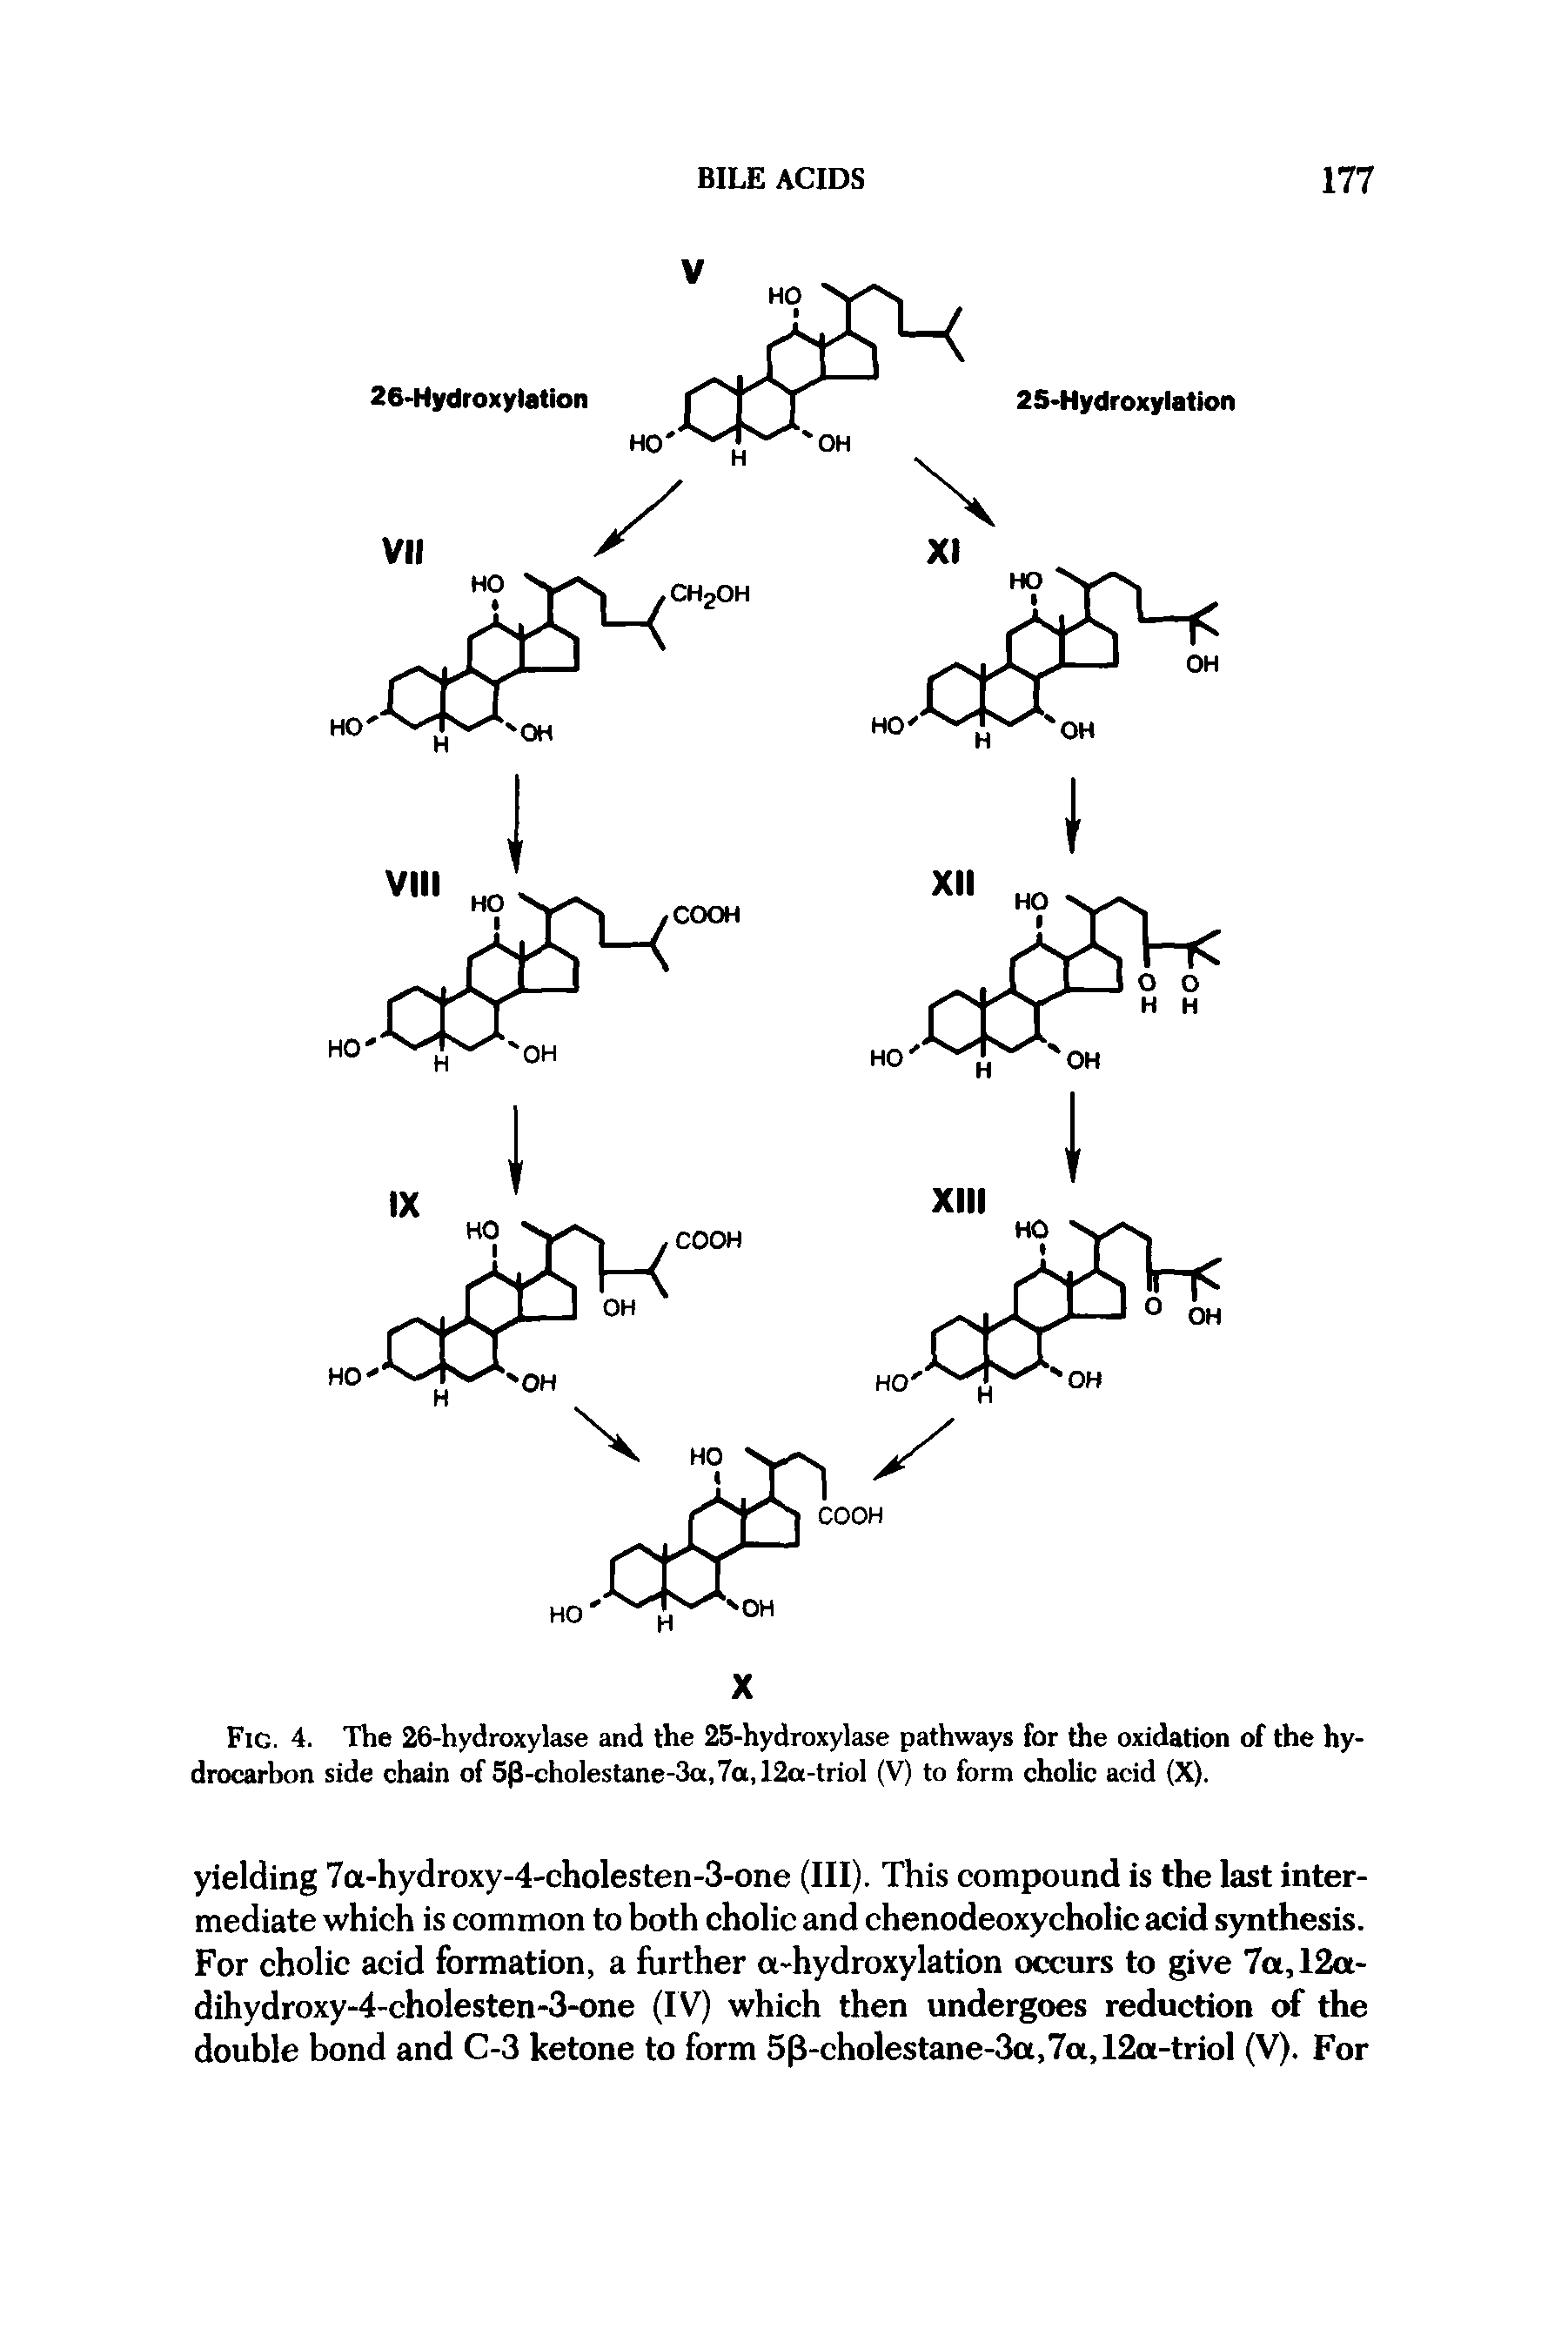 "Fig. 4. The 26-hydroxylase and the 25-hydroxylase pathways for the oxidation of the <a href=""/info/hydrocarbon_side_chain"">hydrocarbon side chain</a> of 5p-cholestane-3a,7a,12a-triol (V) to form cholic acid (X)."